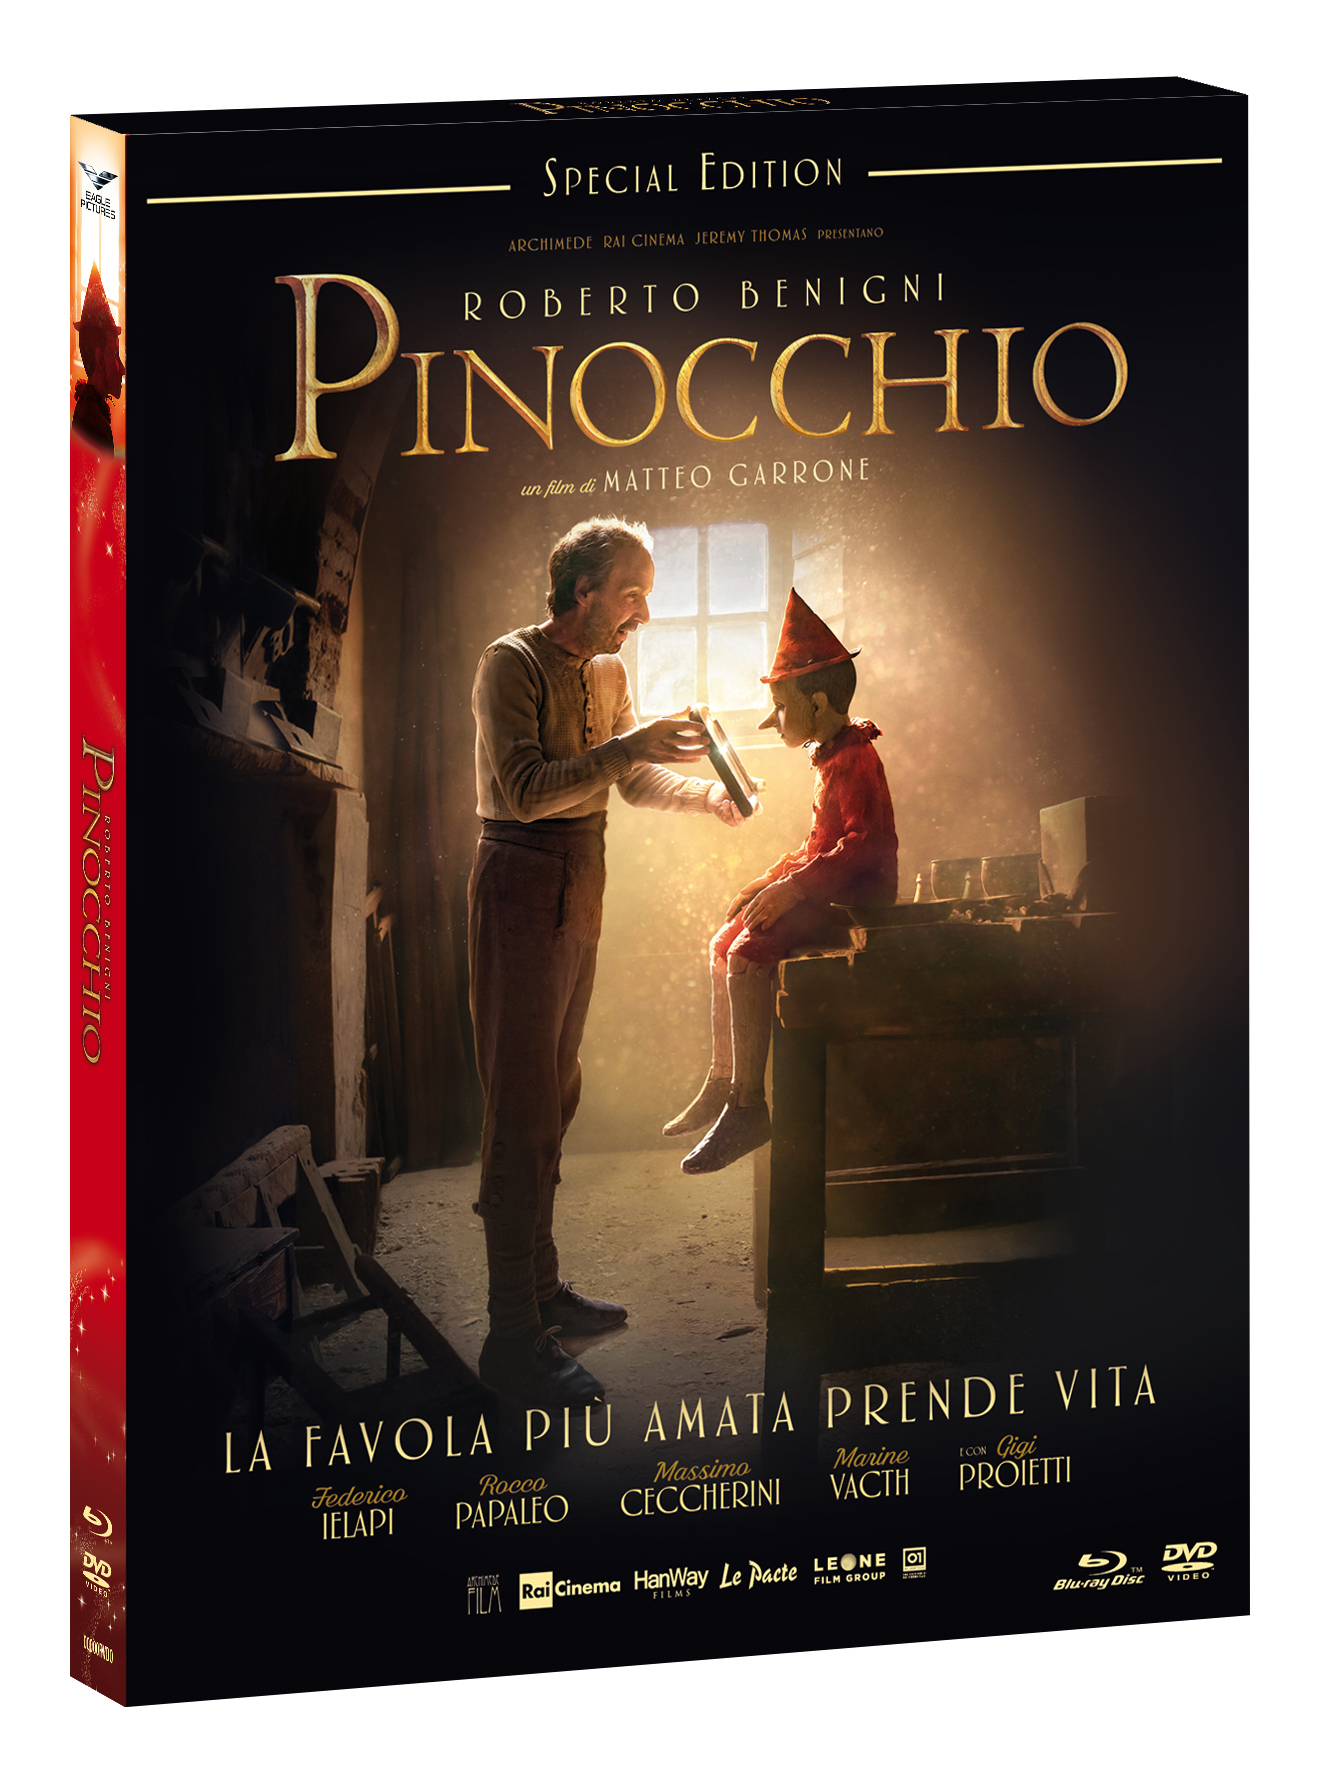 Pinocchio_SpecialEdition_Slipcase_BD_SELL_HI